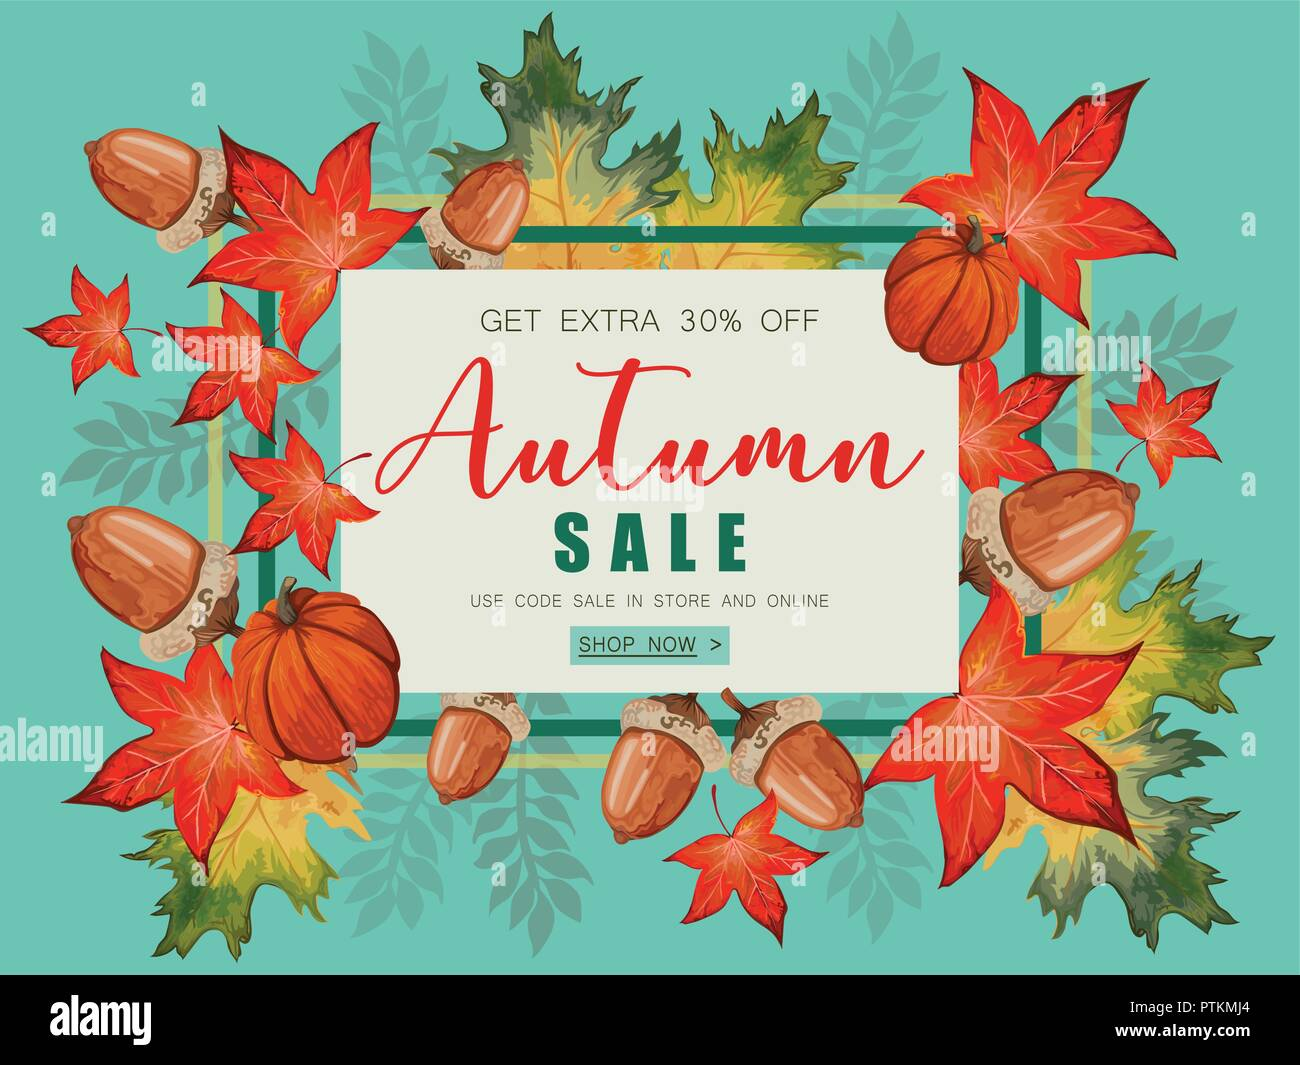 banner for autumn sale with fall leaves and pumpkin stock vector art